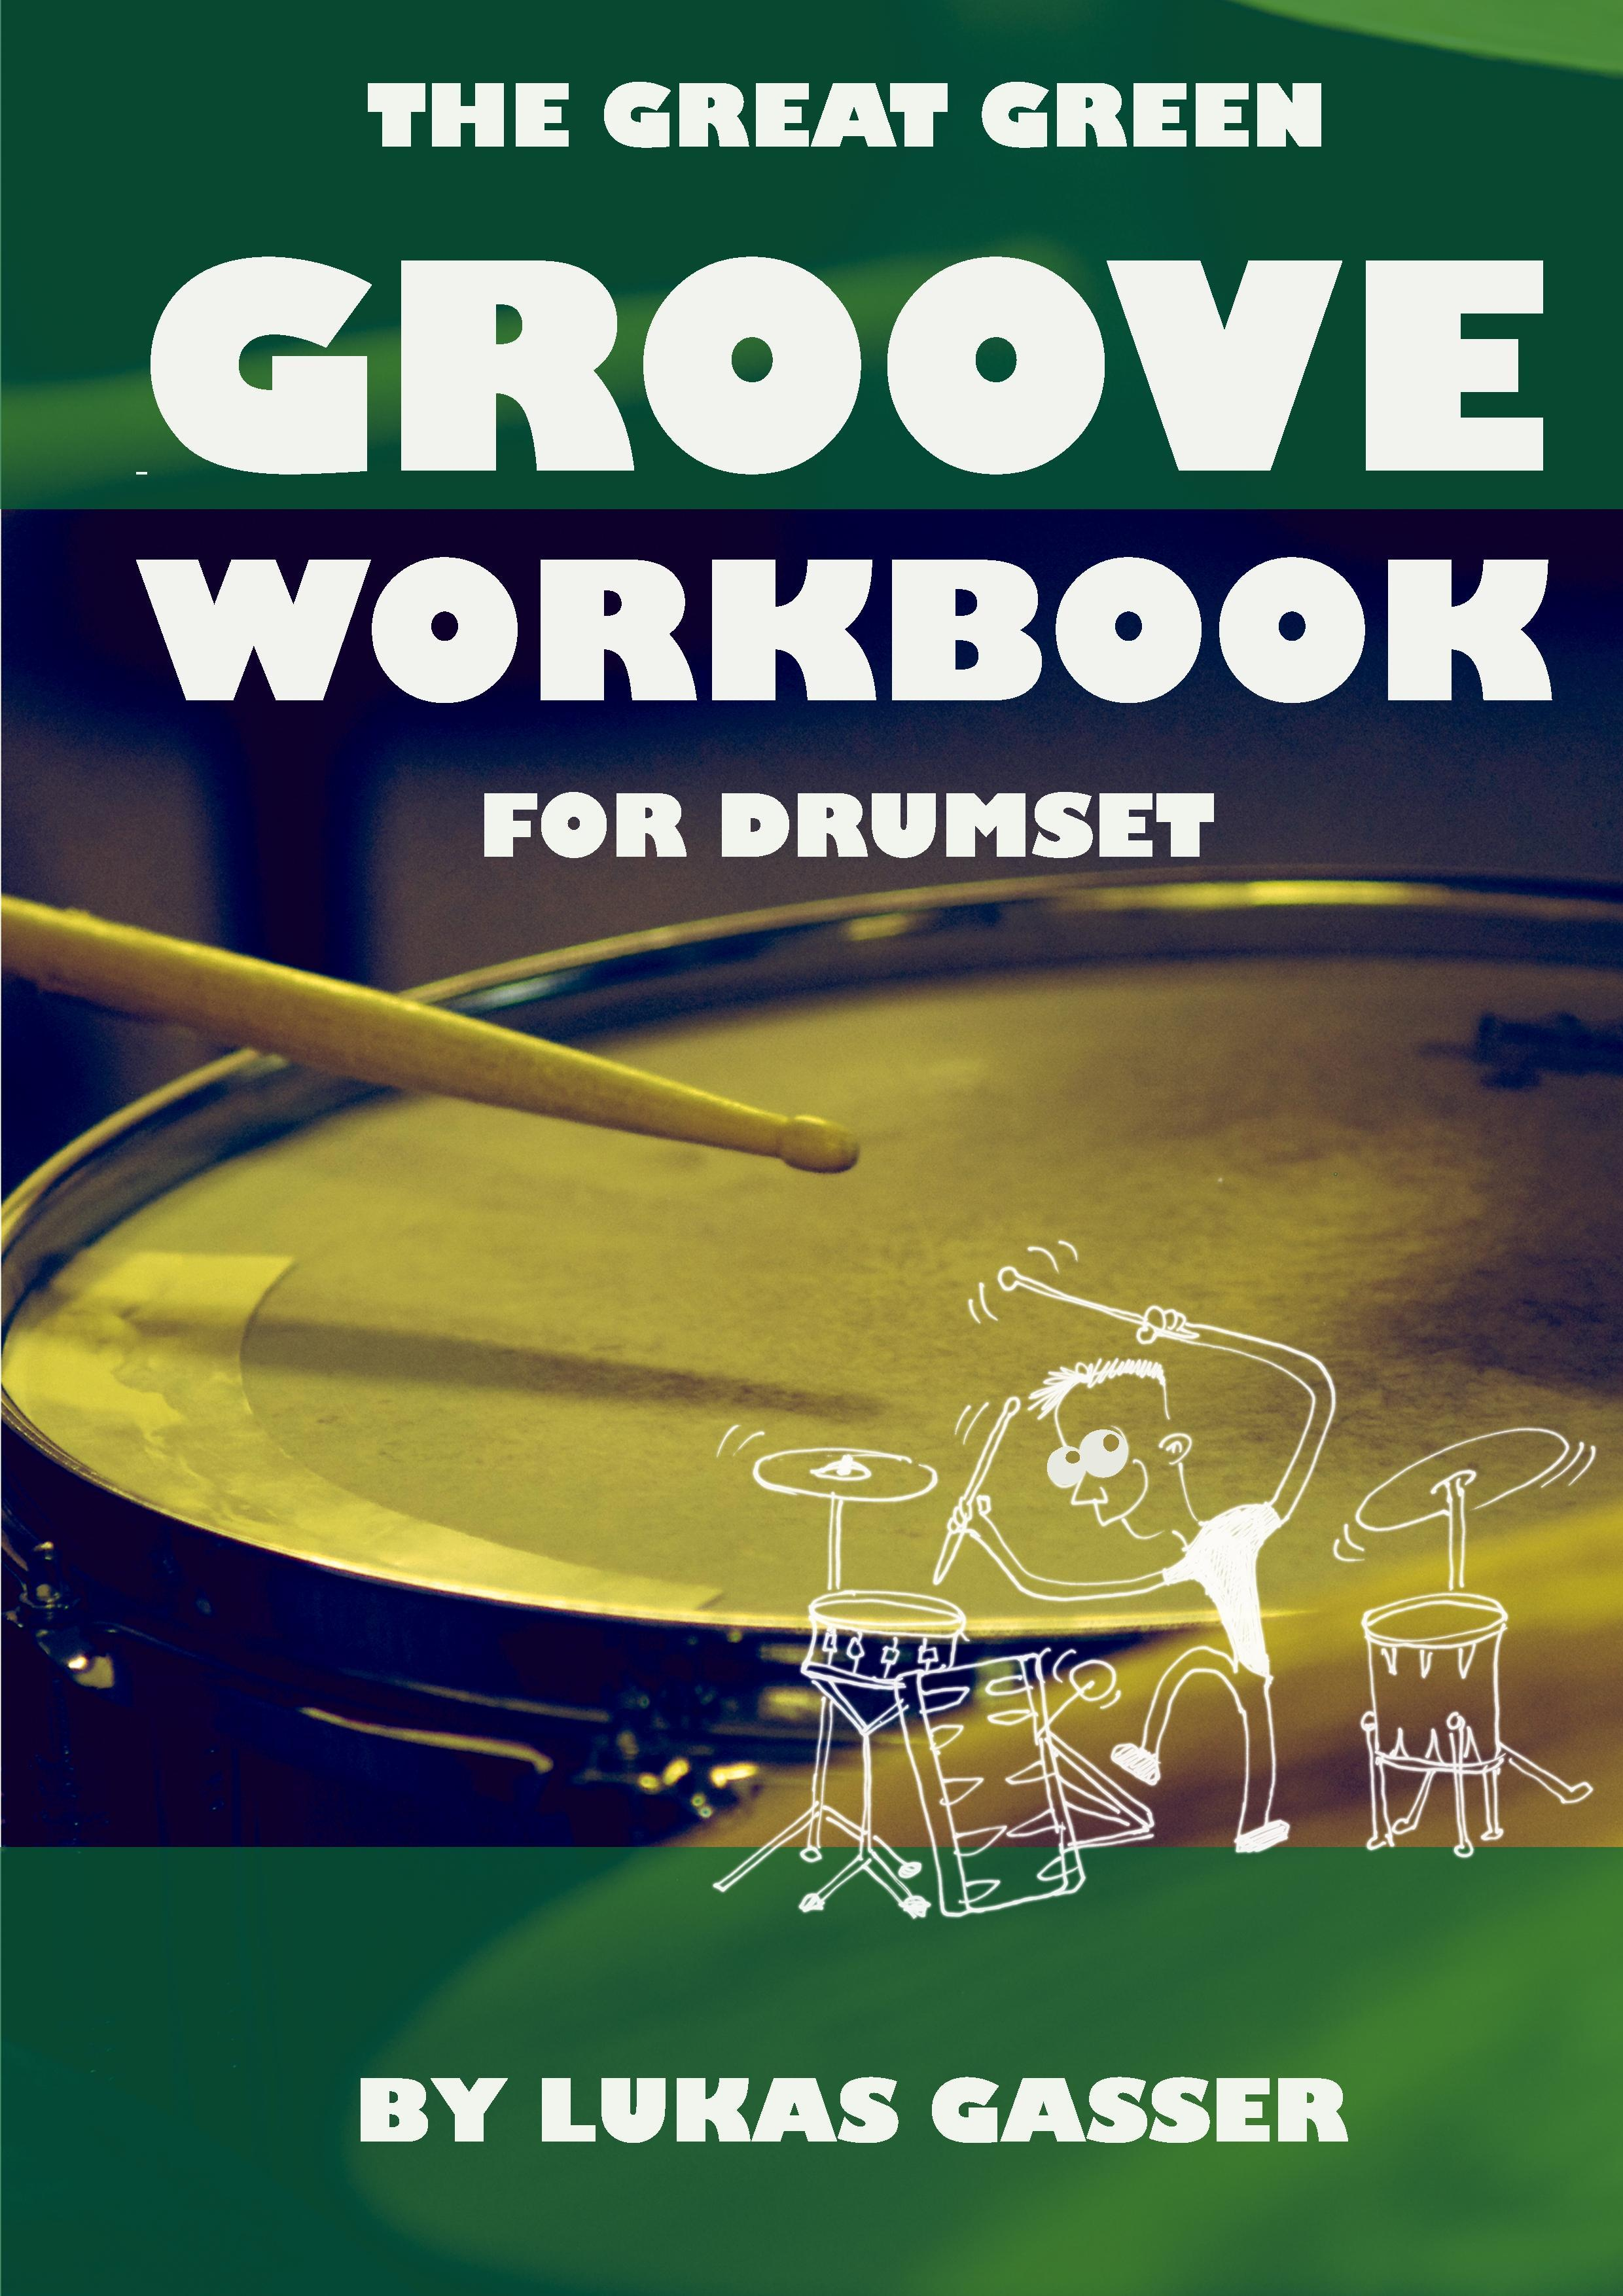 The Great Green Groove Workbook